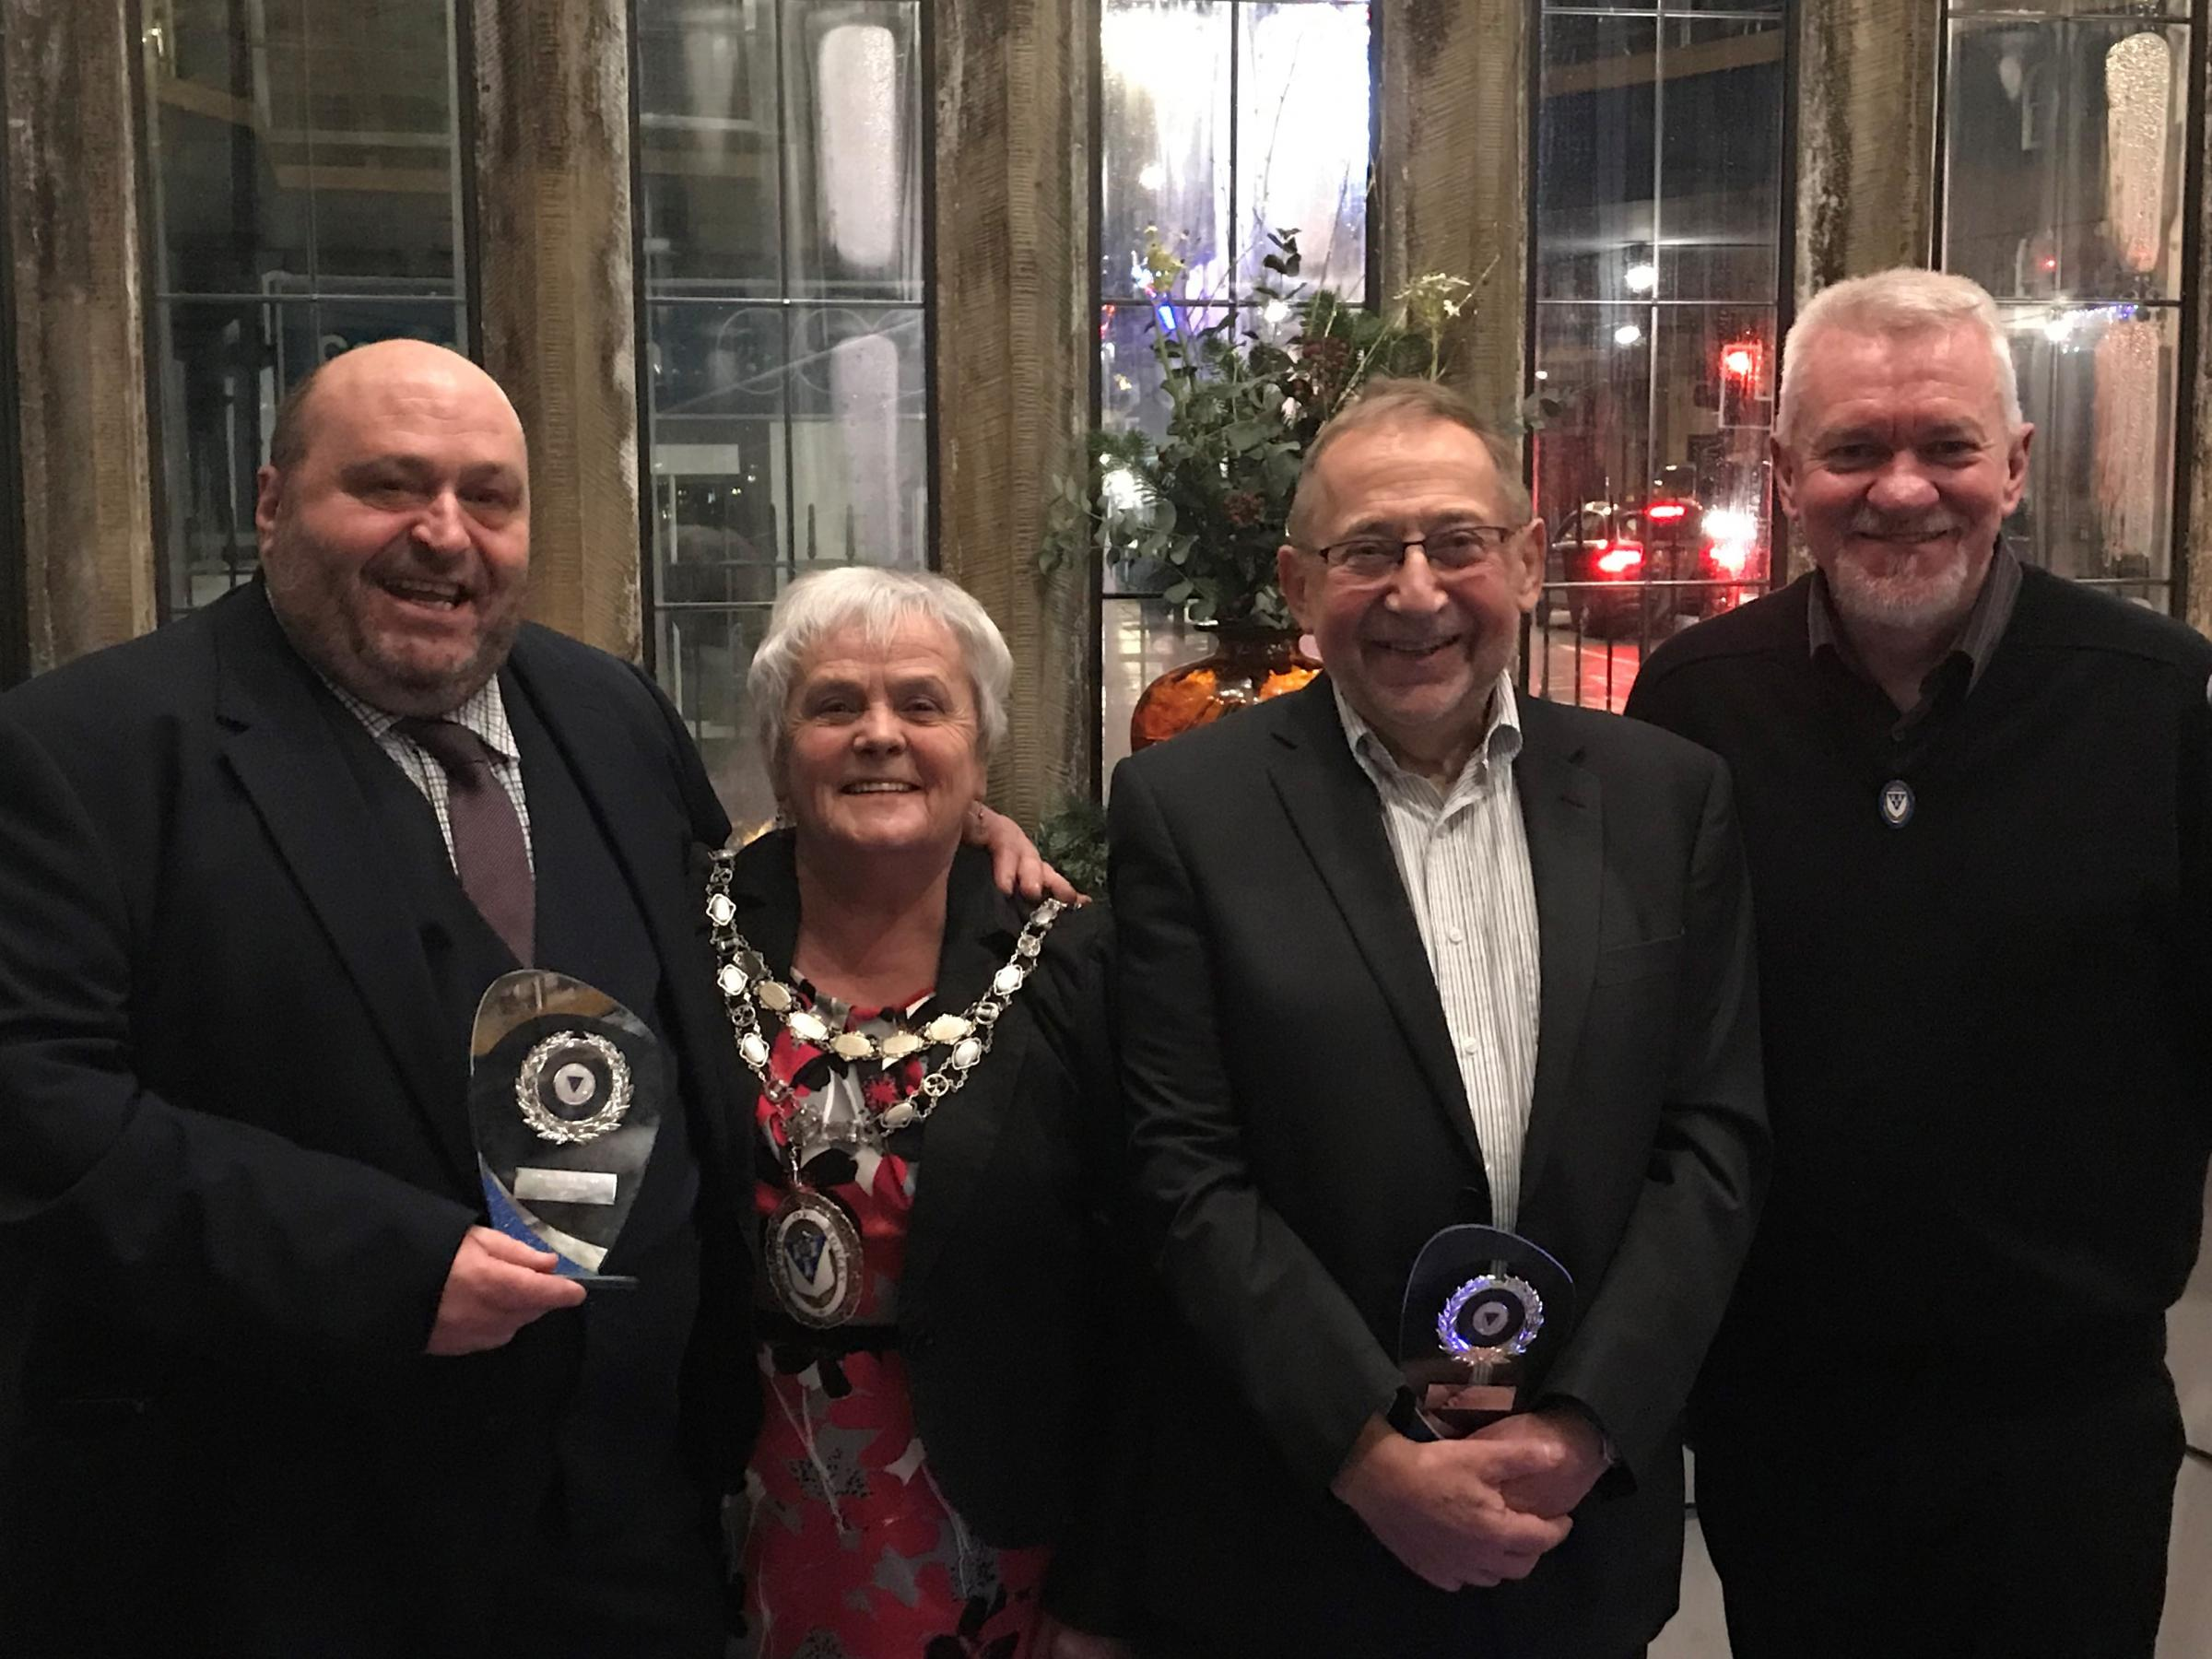 Otley Mayor Mary Vickers with Public Service award winners John Eveleigh and Lawrence Ross, and Councillor Ray Georgeson